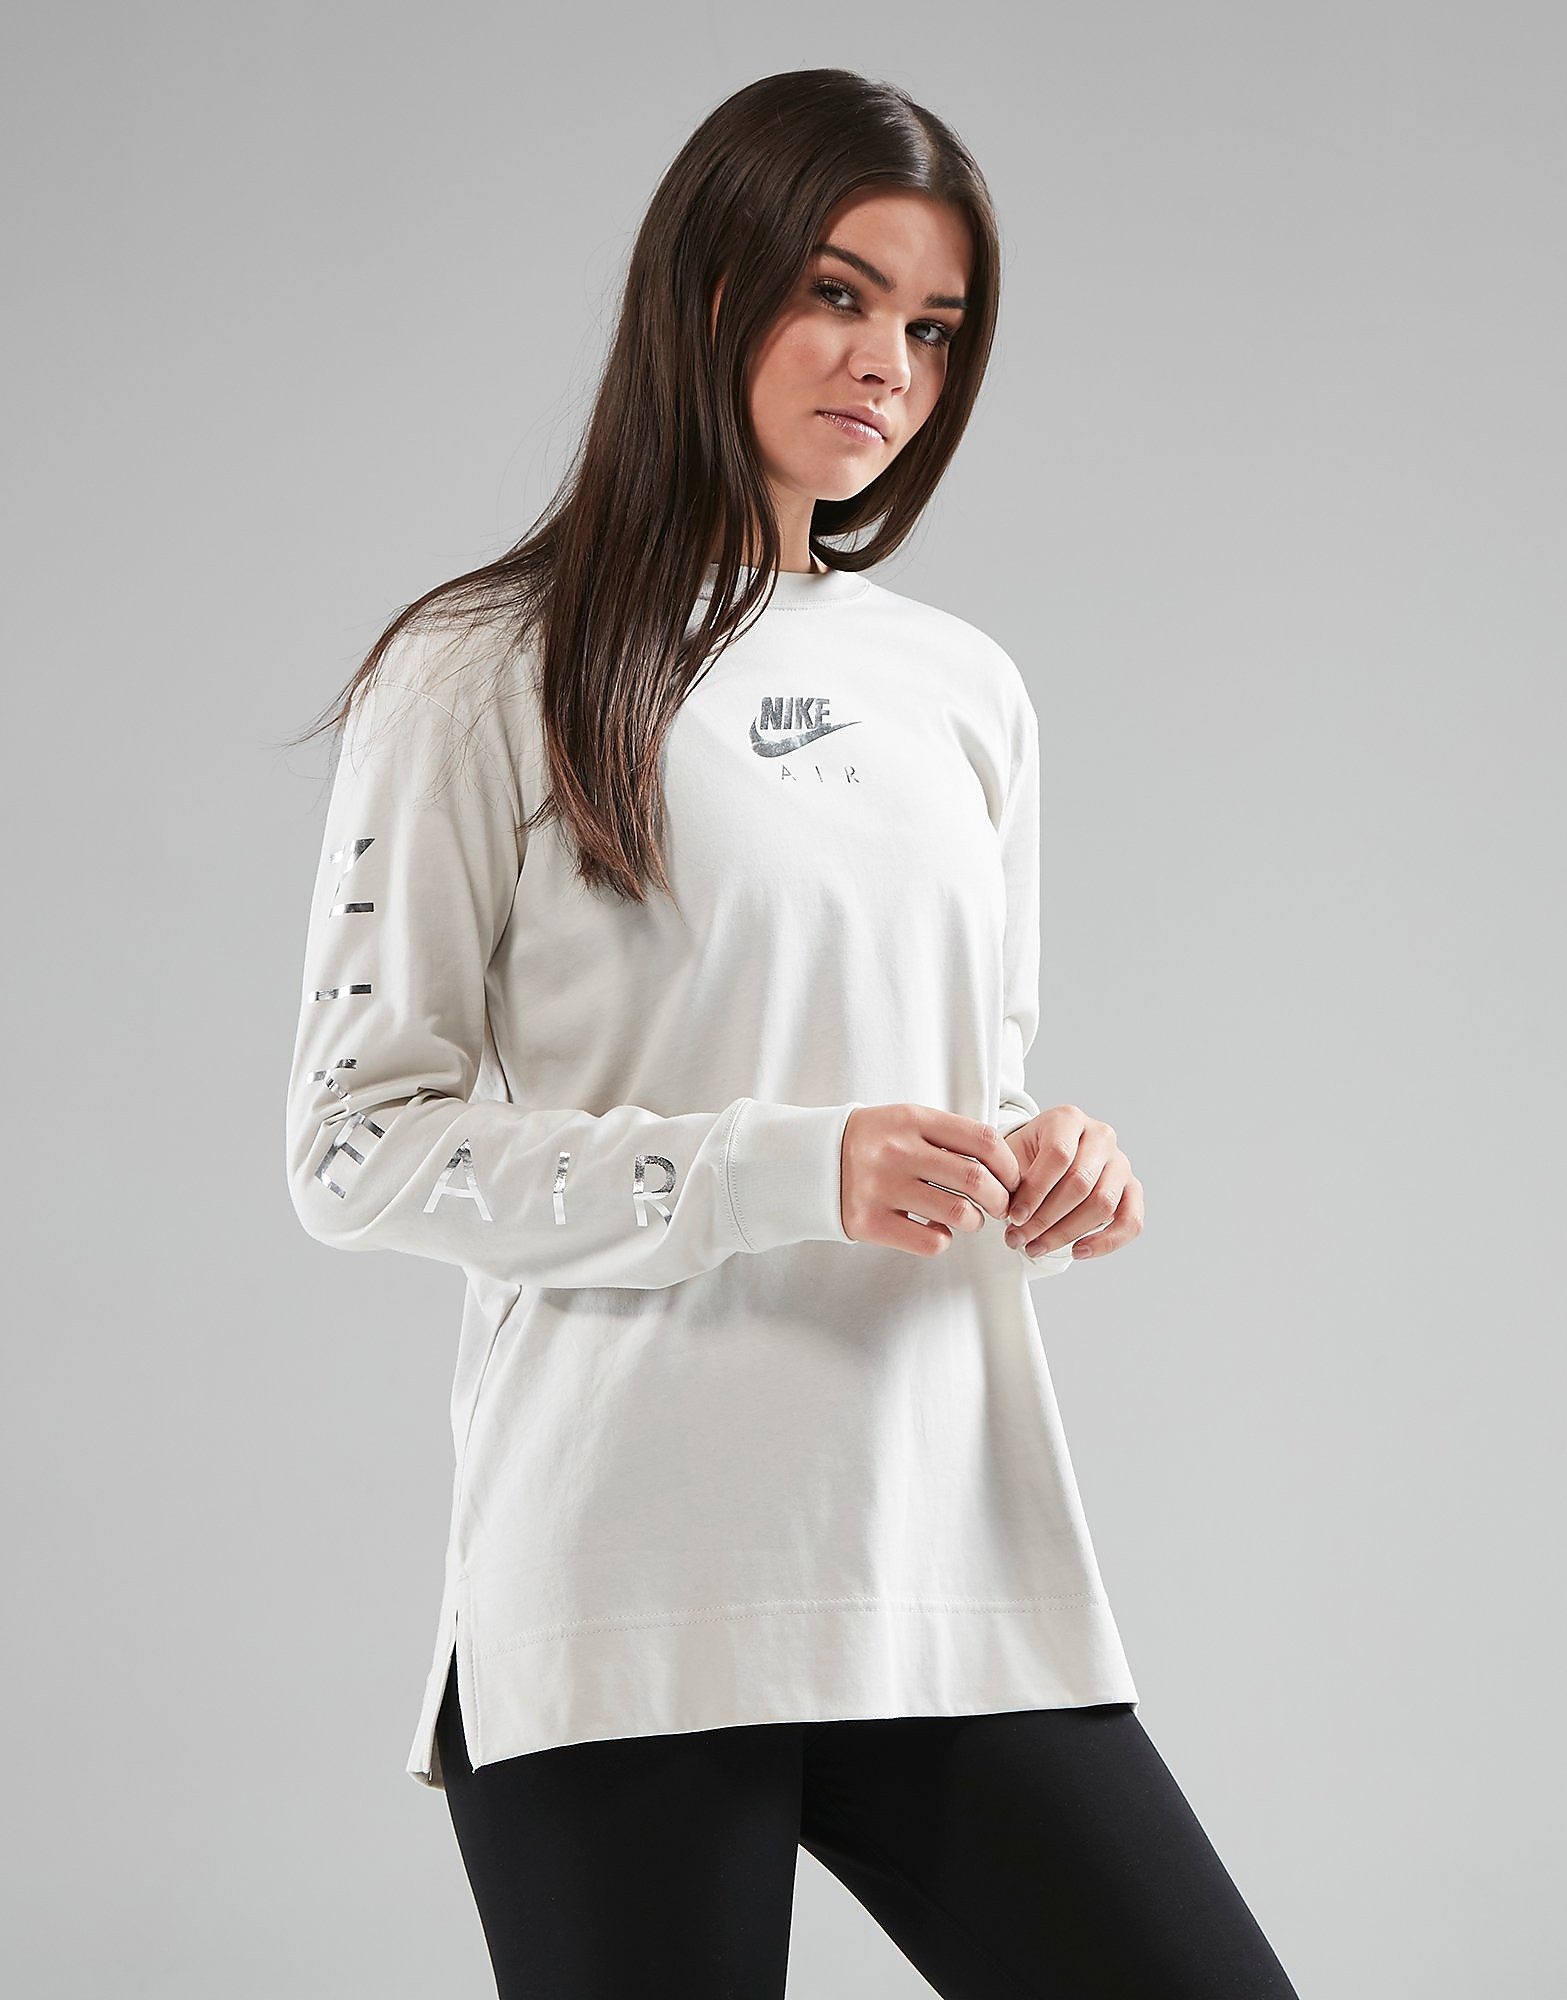 Nike Air Long Sleeve T-Shirt